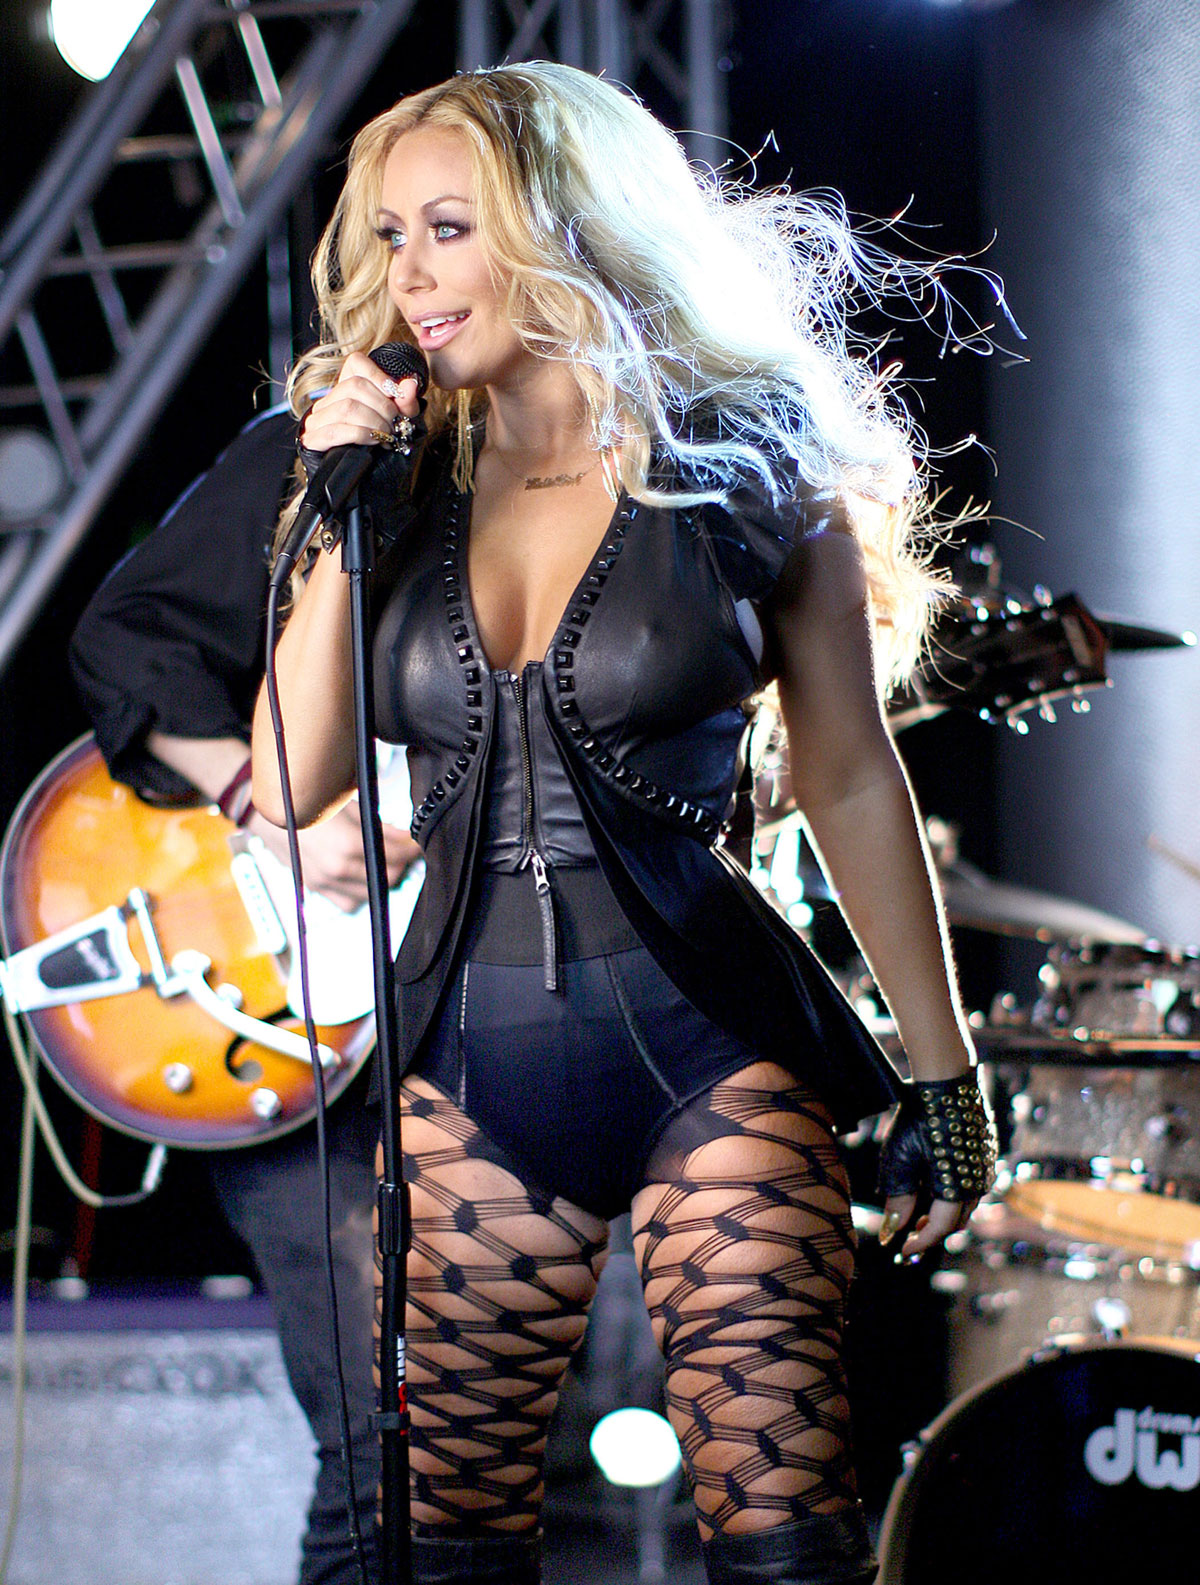 Aubrey o day archives page 3 of 4 hawtcelebs hawtcelebs - Aubrey O Day In Wrecking Ball